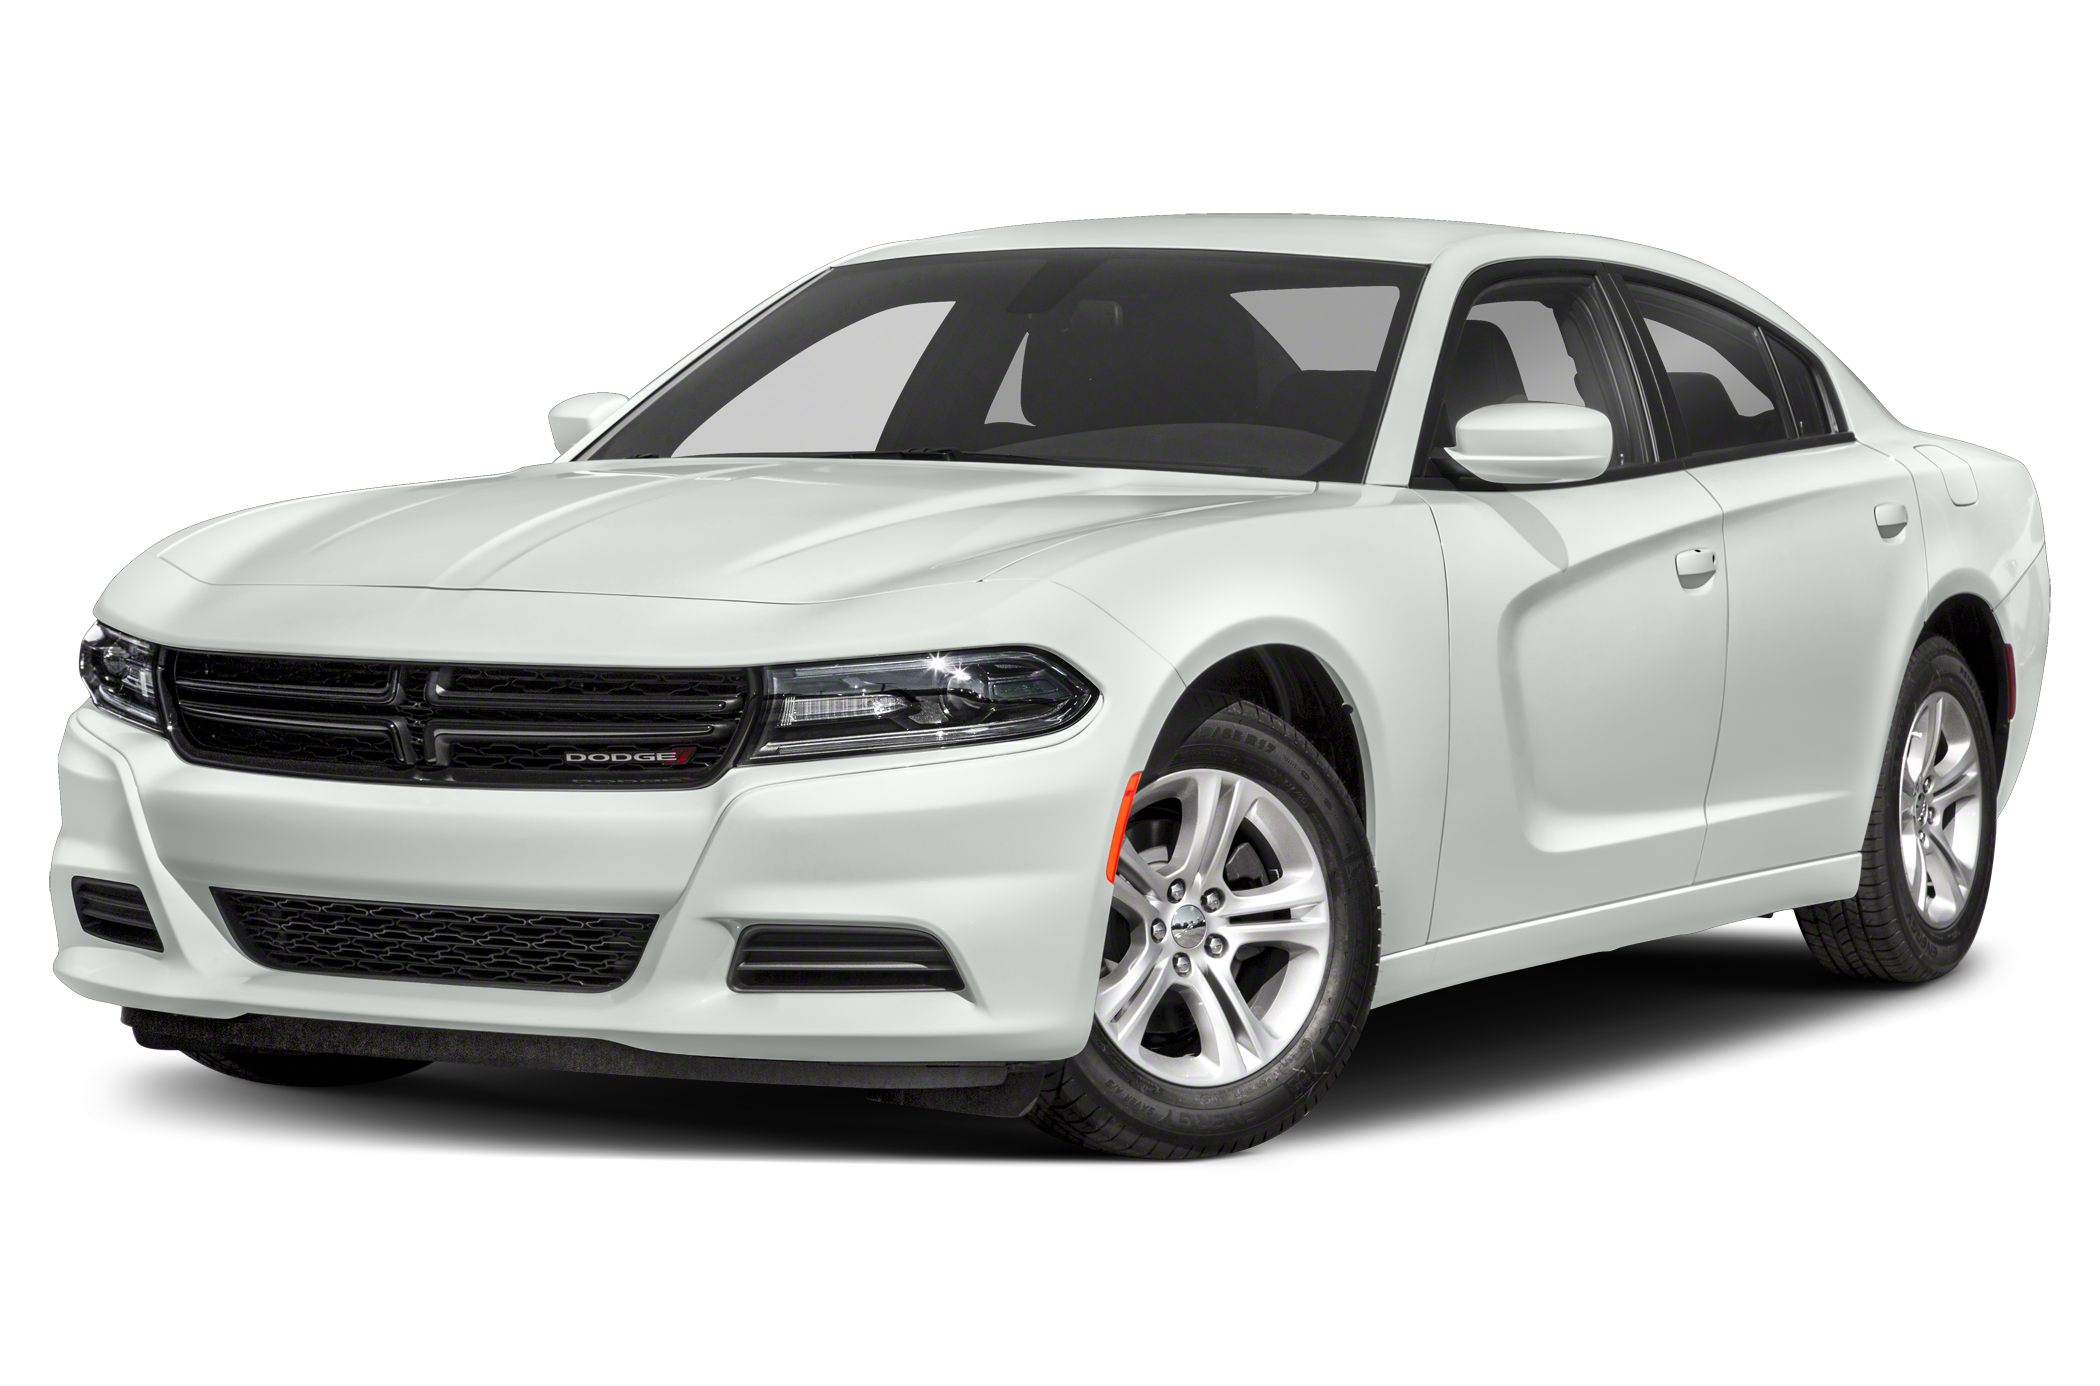 2020 Dodge Charger Scat Pack 4dr Rear Wheel Drive Sedan Specs And Prices